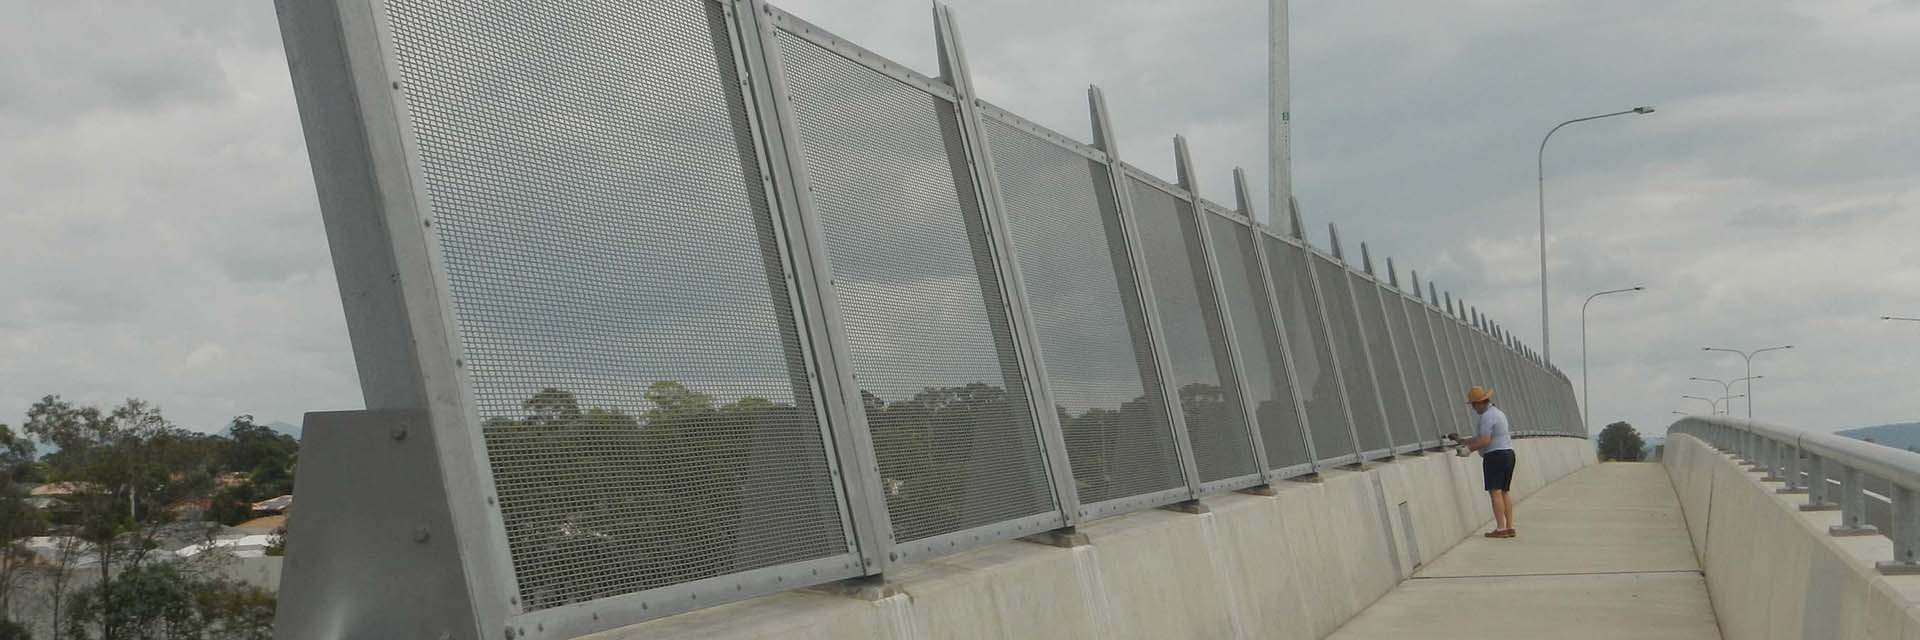 Steel Anti-Throw Screens, Bike Safety Rail, Lampstand Brackets, bearing Restraint angles & Plates – Plantation Rd Bridge, Dakabin.